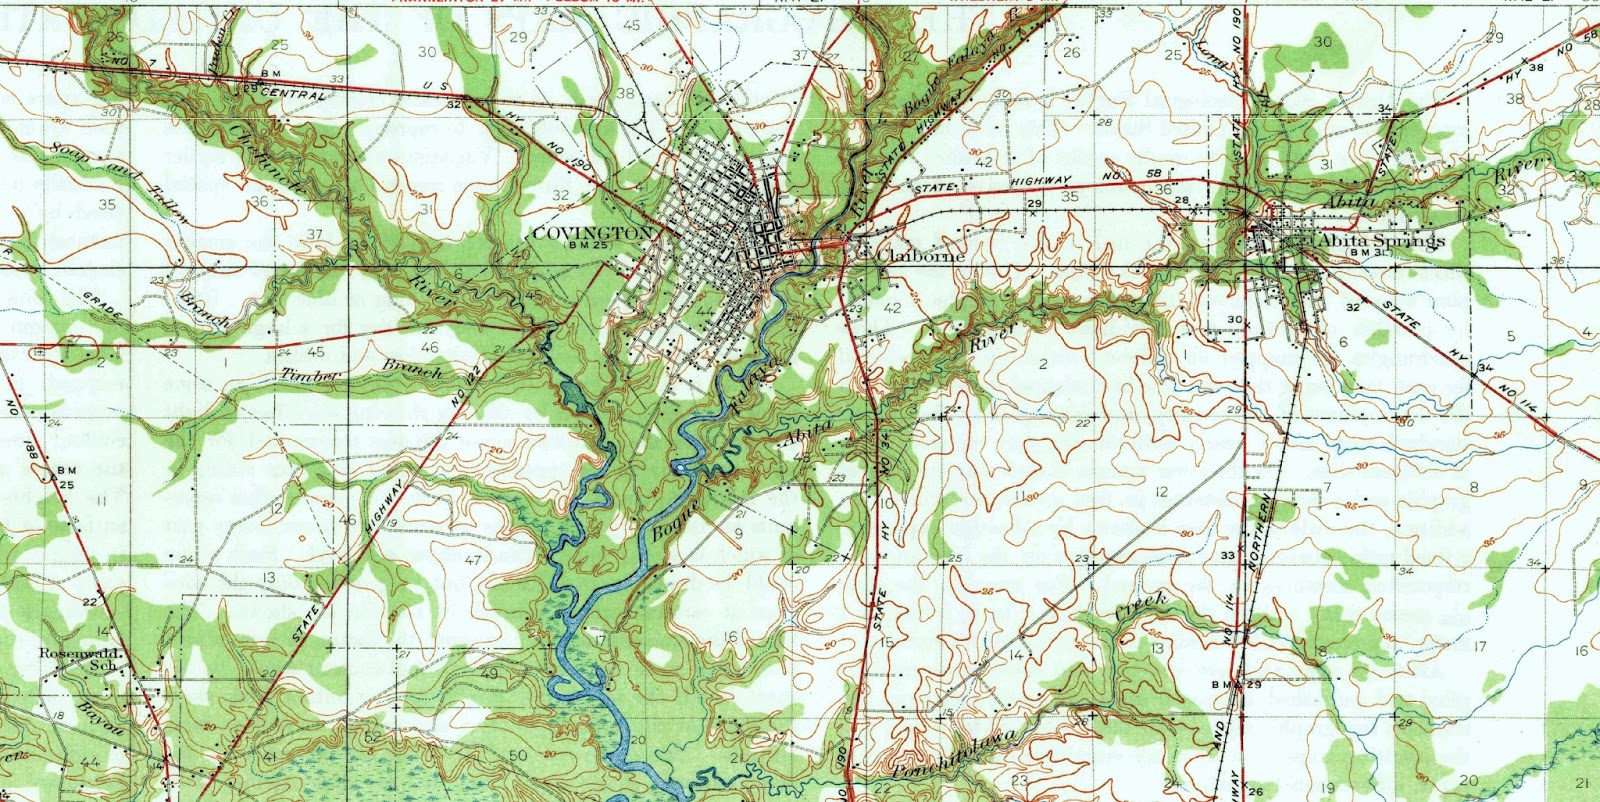 the first image below is of the covington area from a 1935 usgs topographical map and the second image is the mandeville area from the same map